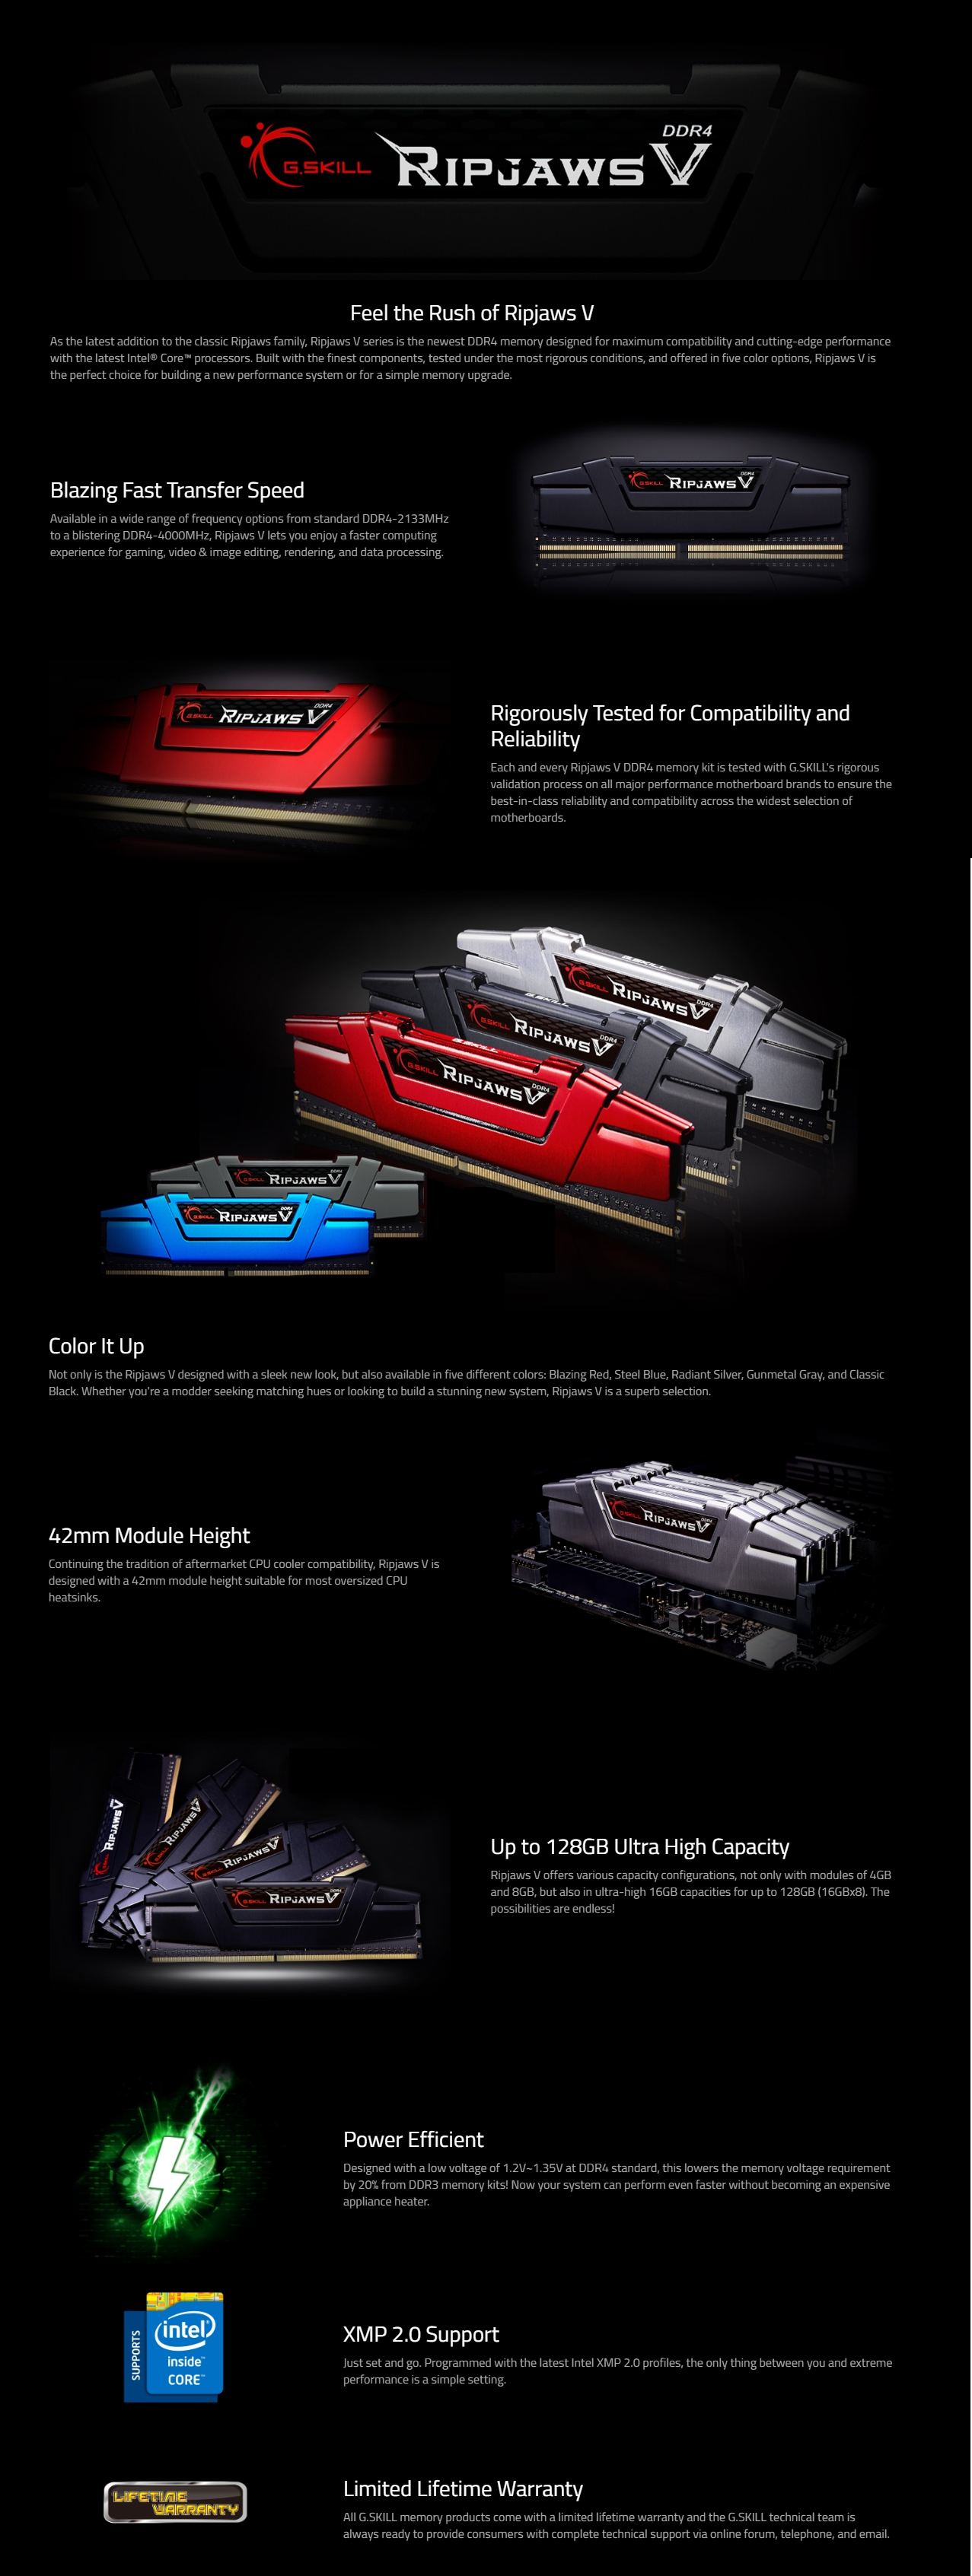 A large marketing image providing additional information about the product G.Skill 64GB Kit (2x32GB) DDR4 Ripjaws V C18 2666Mhz - Additional alt info not provided